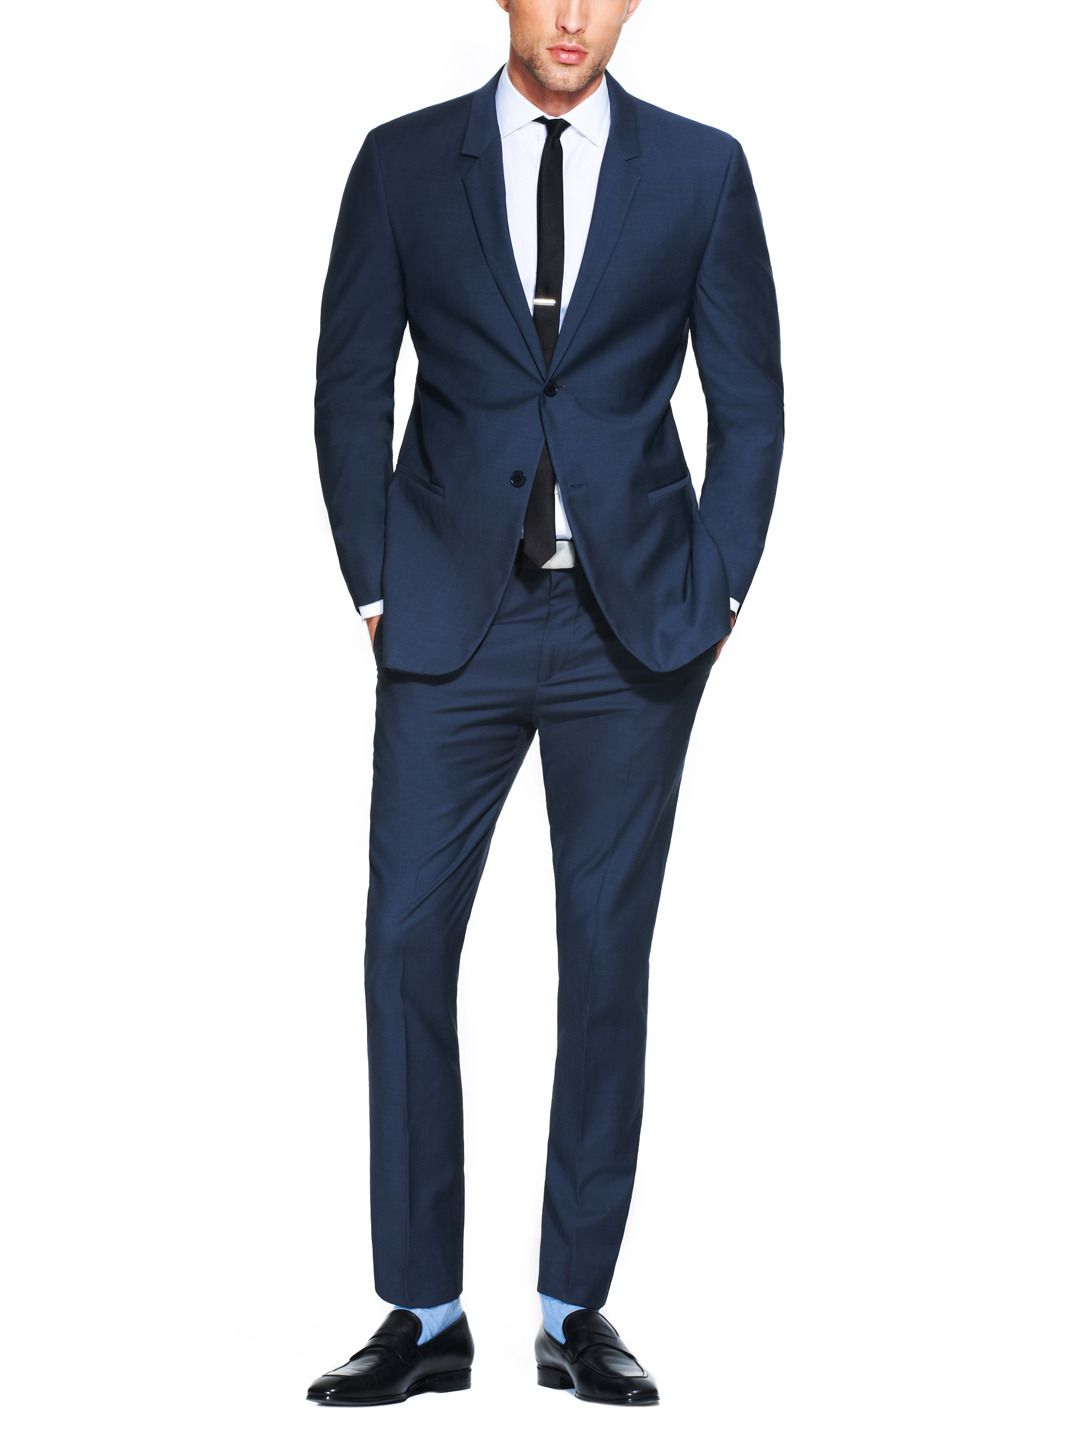 Spring/Summer wedding suit // Calvin Klein Slim Fit Suit, menswear ...